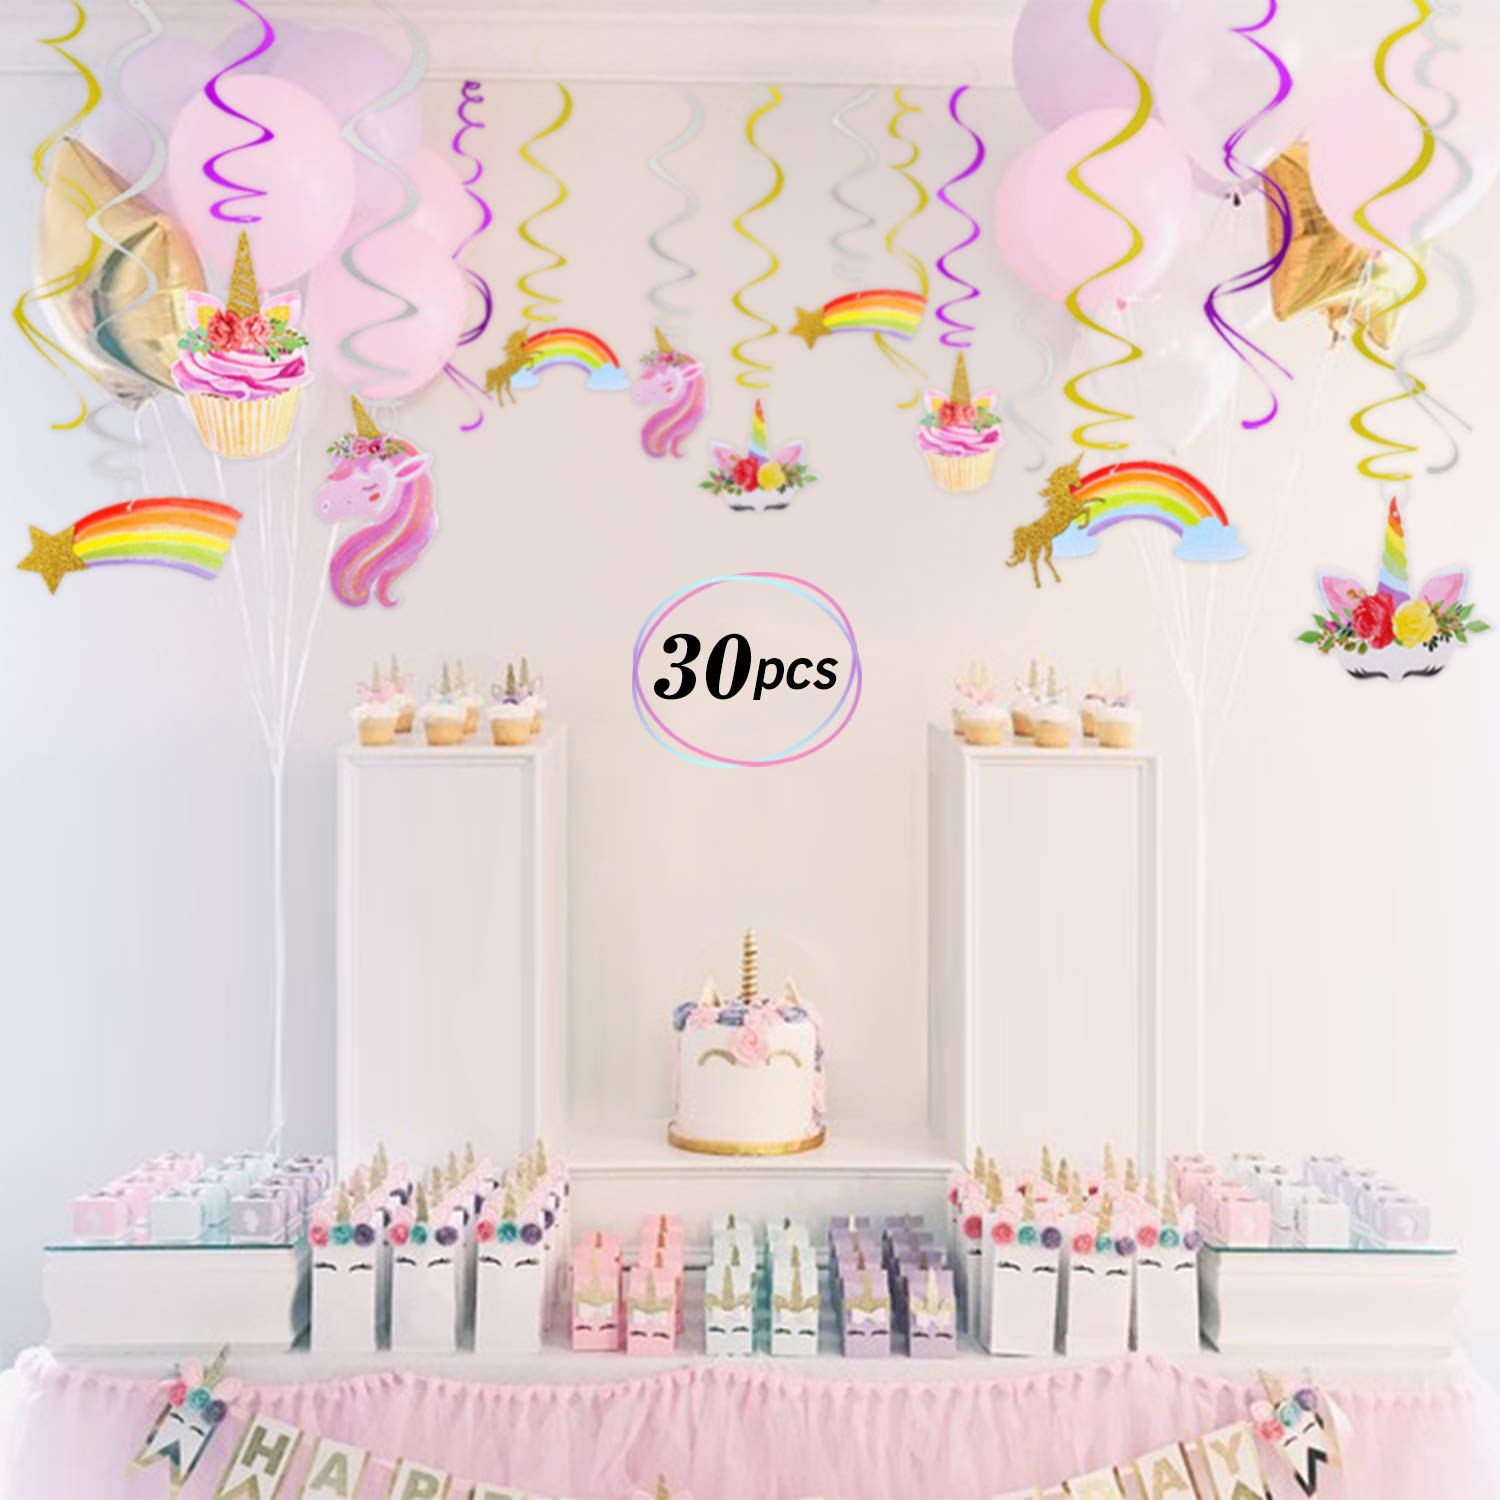 Unicorn Hanging Swirl Decorations, Unicorn Themed Party Supplies, 30pcs,  Birthday Baby Shower Party Decorations